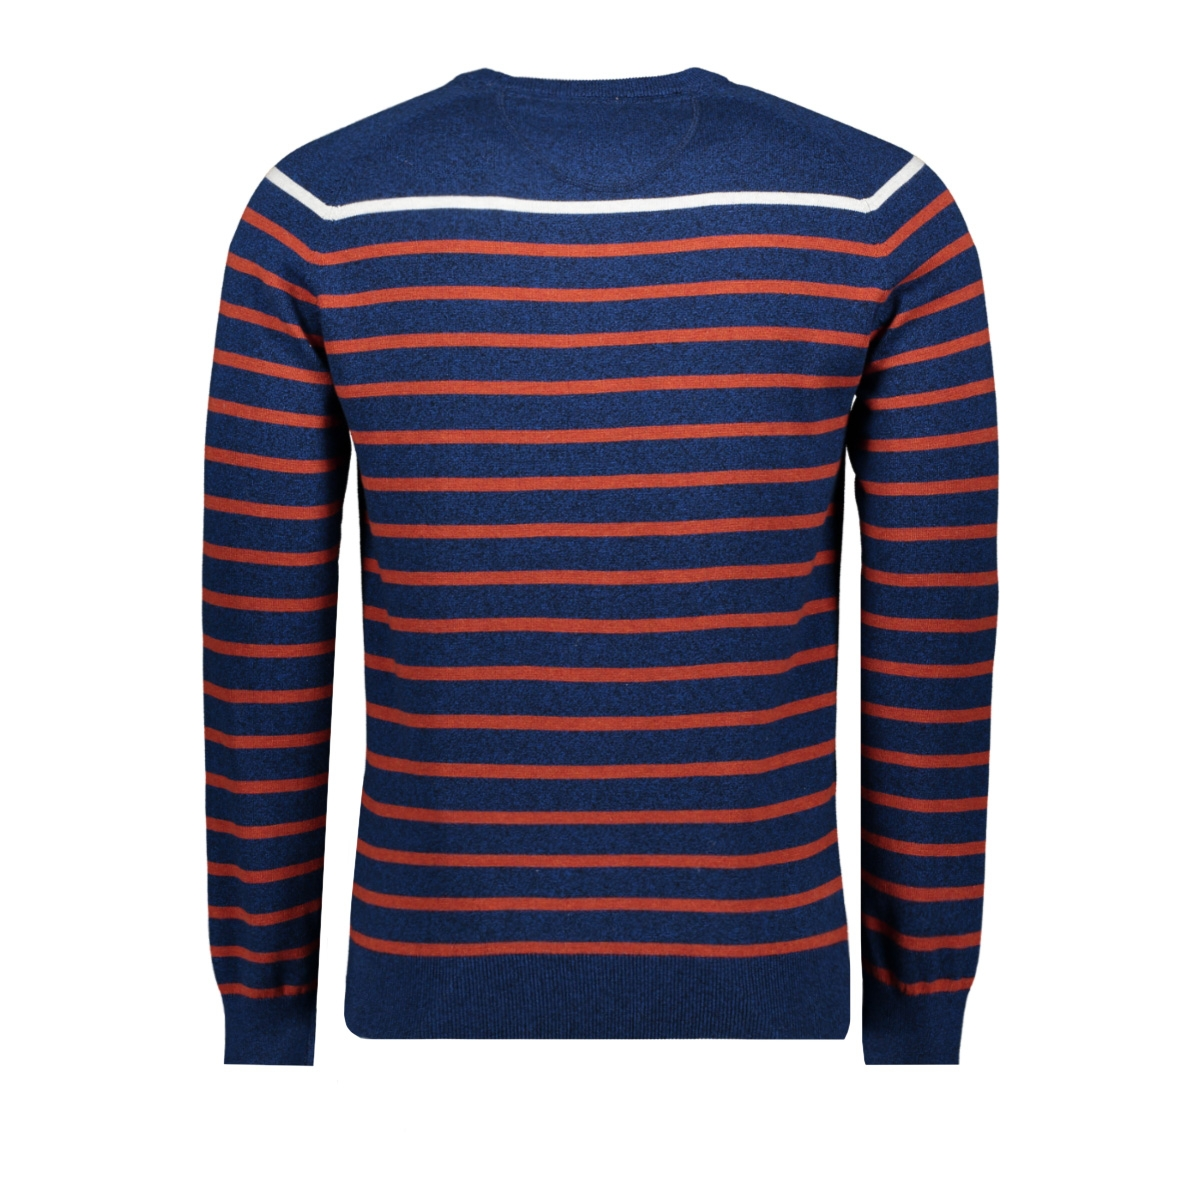 knitwear  harold 052964 campbell trui 382 navy / red